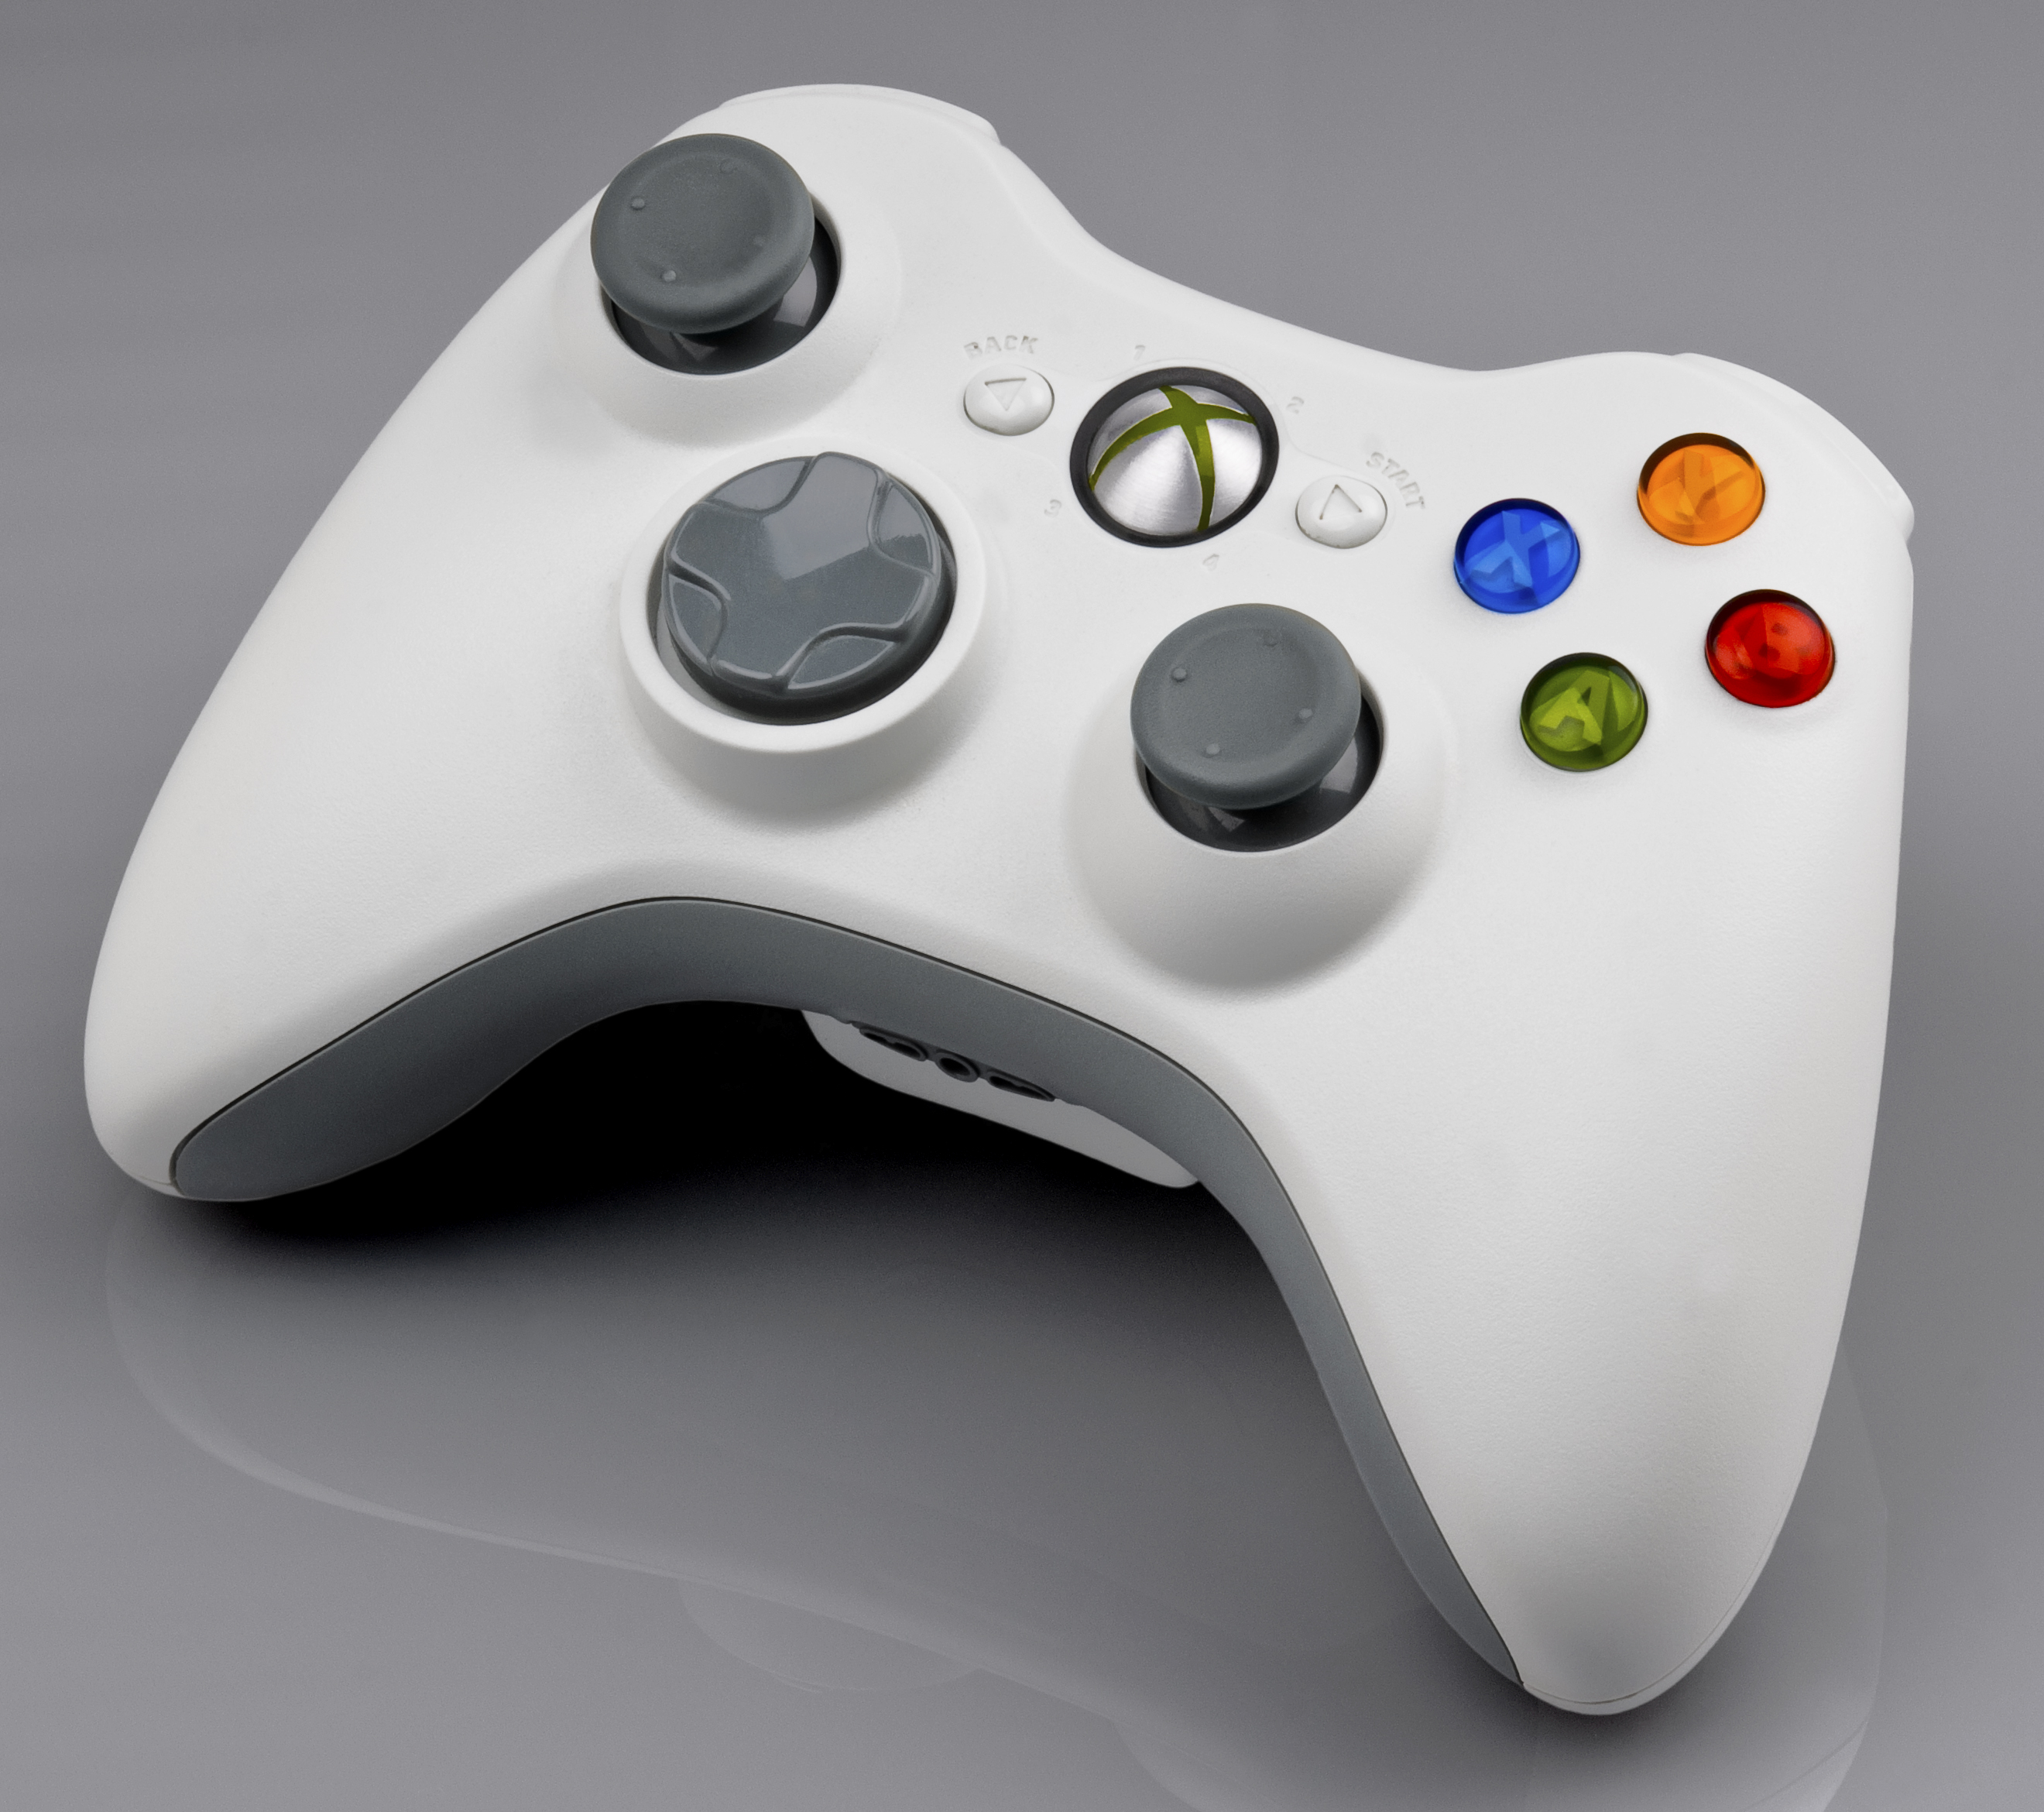 a compare and contrast essay on wii and xbox writework english the xbox 360 wireless controller in white